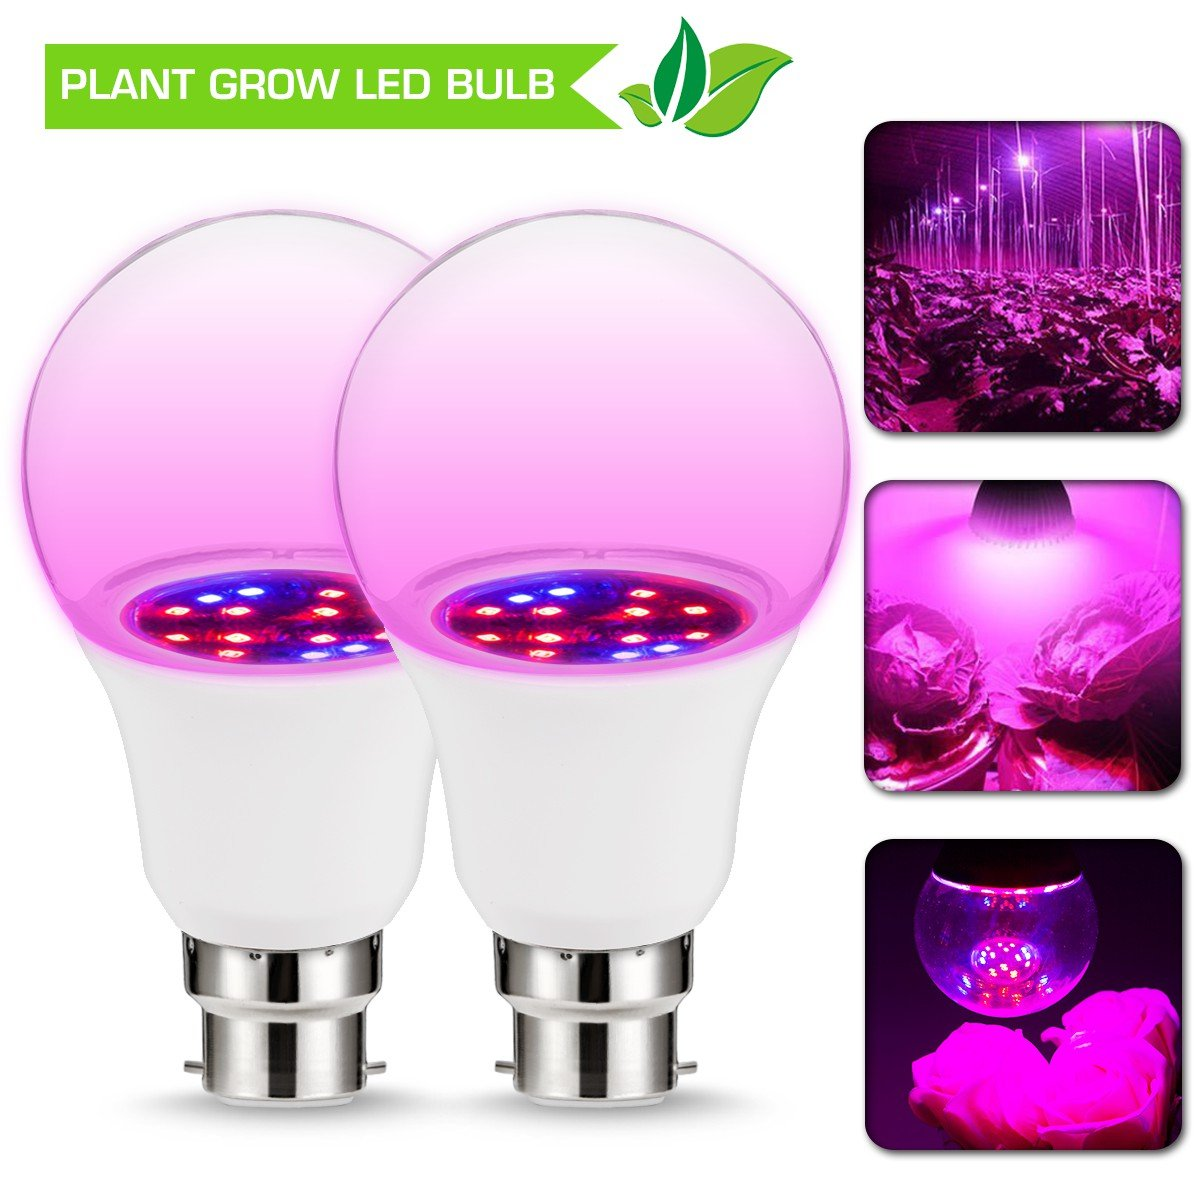 JandCase Grow LED Light, 6W B22 A60 Grow Light Bulb, Non-Dimmable, 270° Beam Angle, Red/Blue Lighting Hydroponic Lights for Garden Greenhouse Indoor Growth Bonsai Vegetable Plants Flowers, 2 Pack [Energy Class A+]